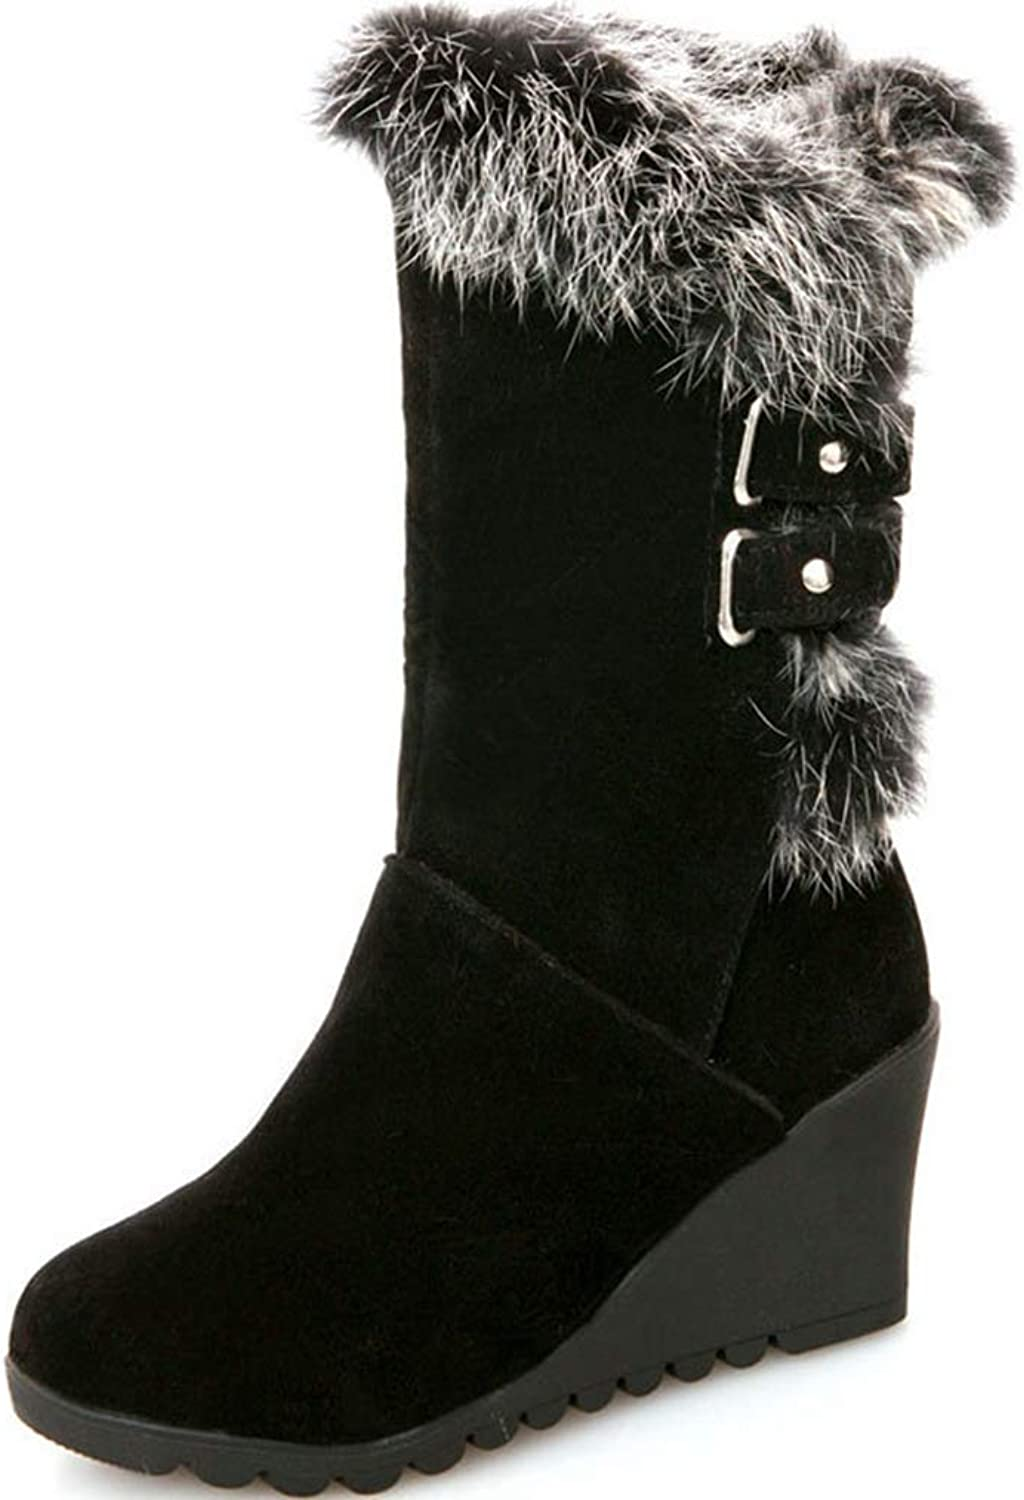 Sam Carle Women Boots, Fashion Solid color Wedge Hairy Slip On Round Toe Mid-Calf Boots